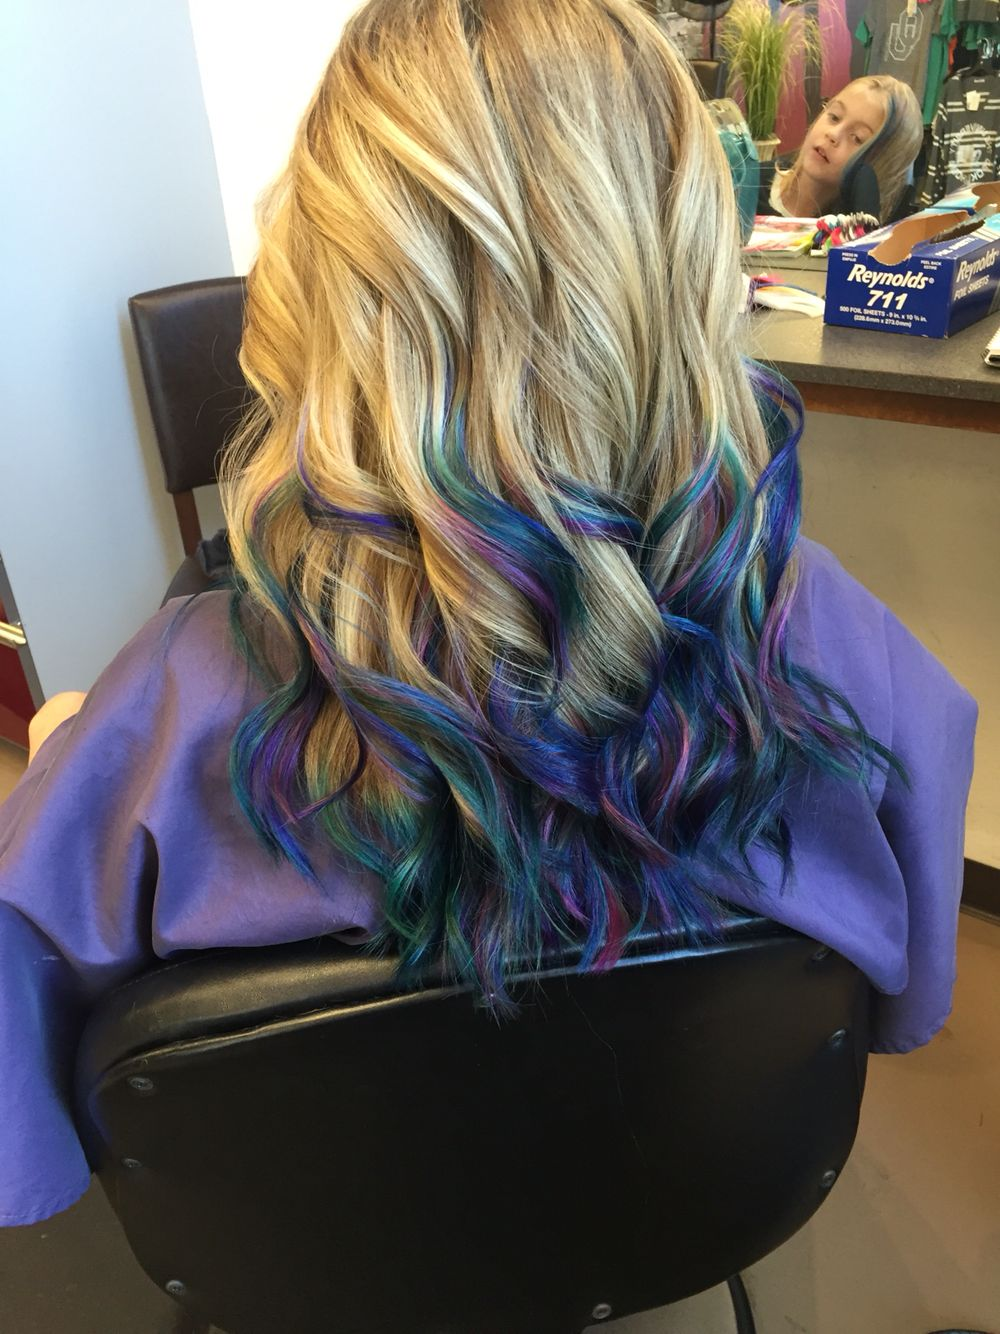 Oil Slick Tips On Blonde Hair With Images Underlights Hair